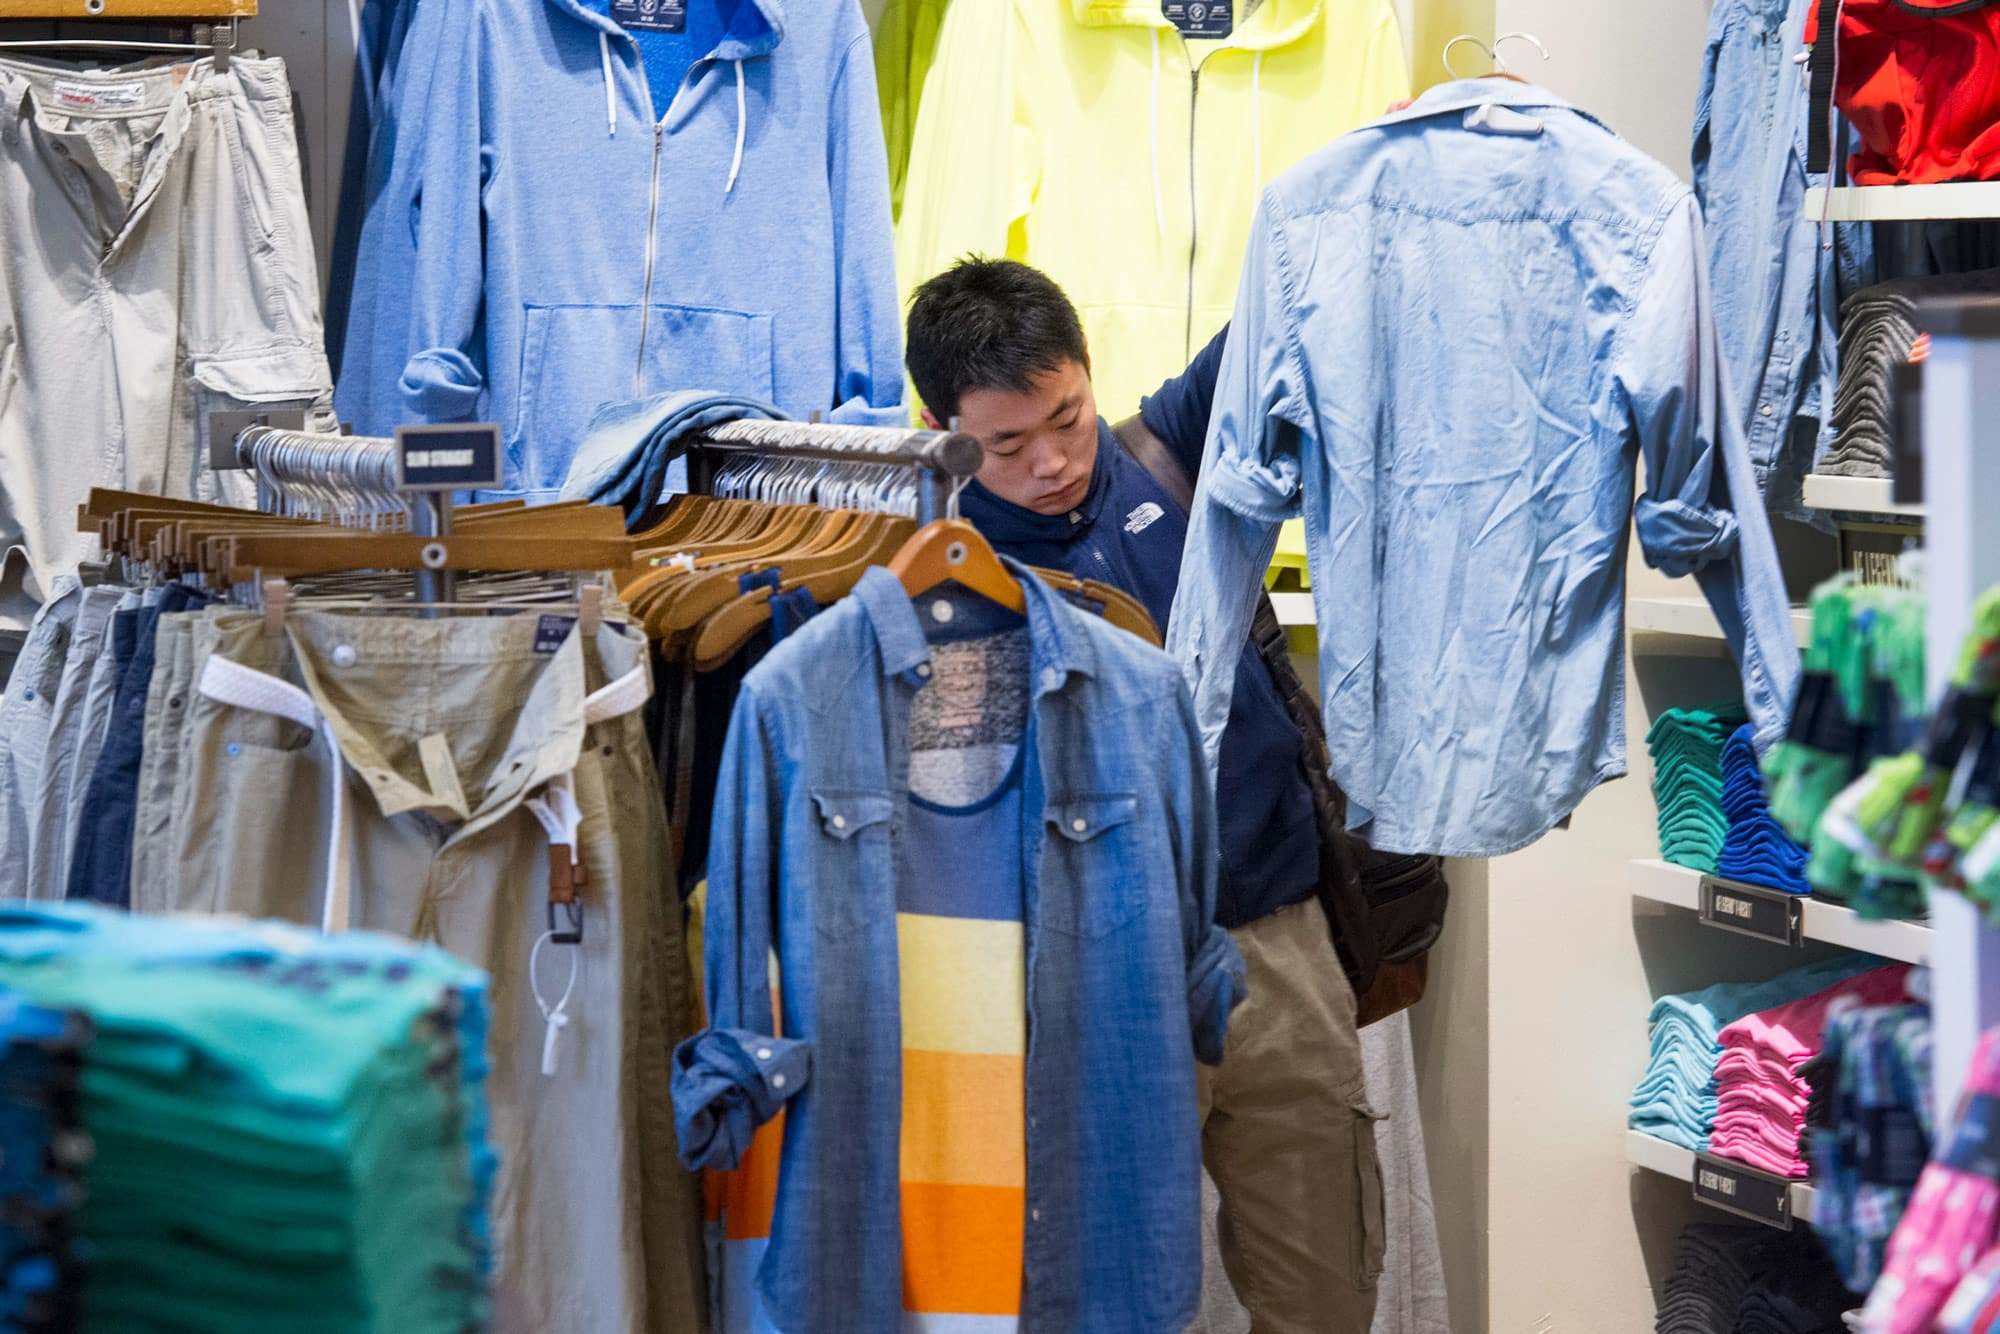 US retail sales rose solidly in July in a sign of consumer optimism